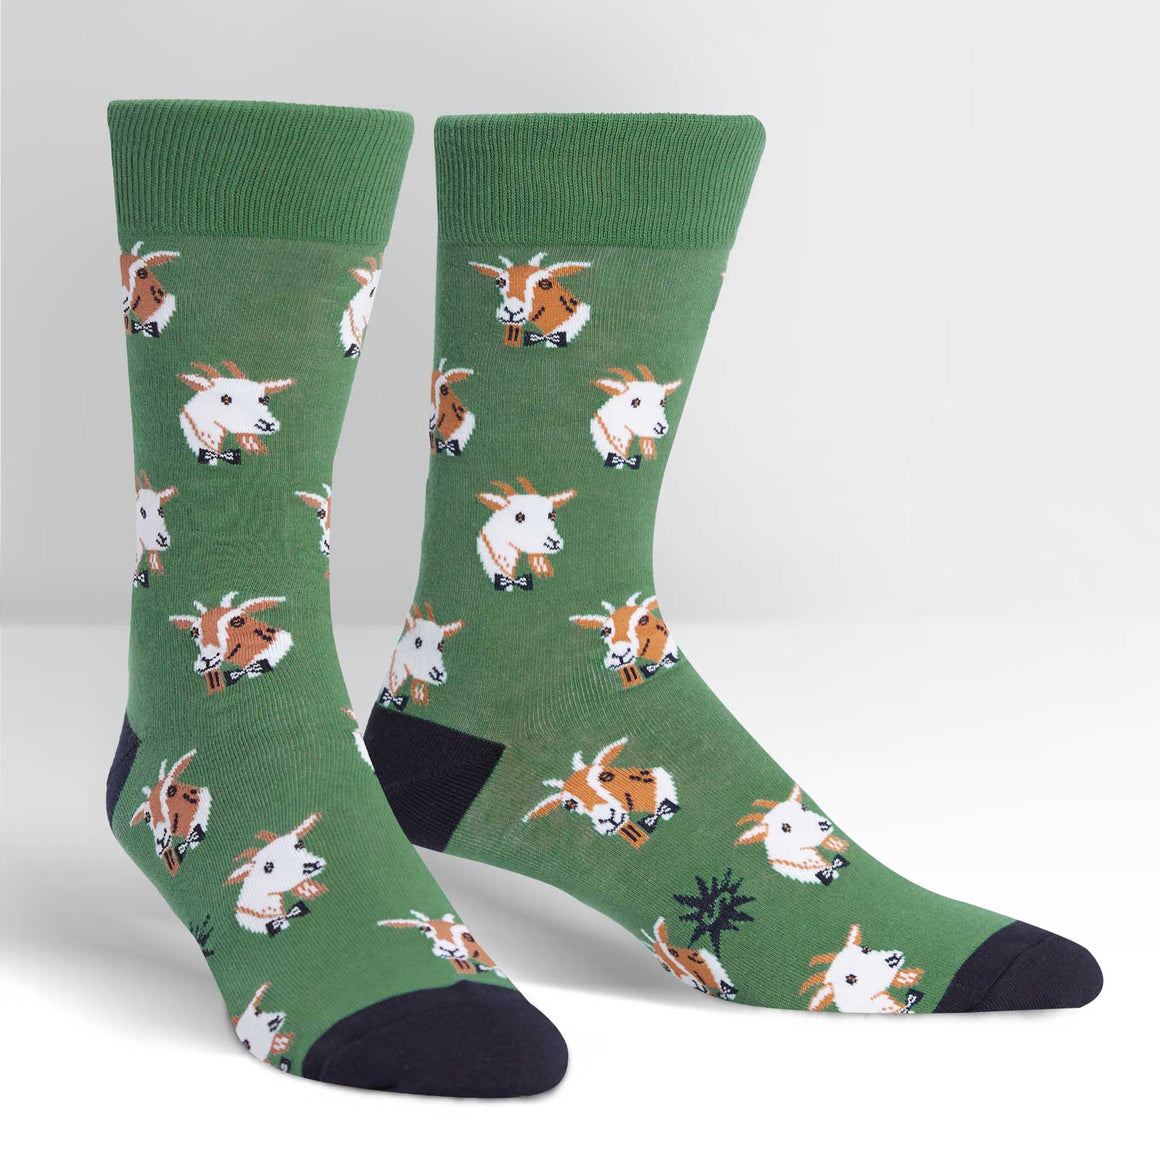 Dapper Goats Crew Socks by Sock it To Me - Compassionate Closet